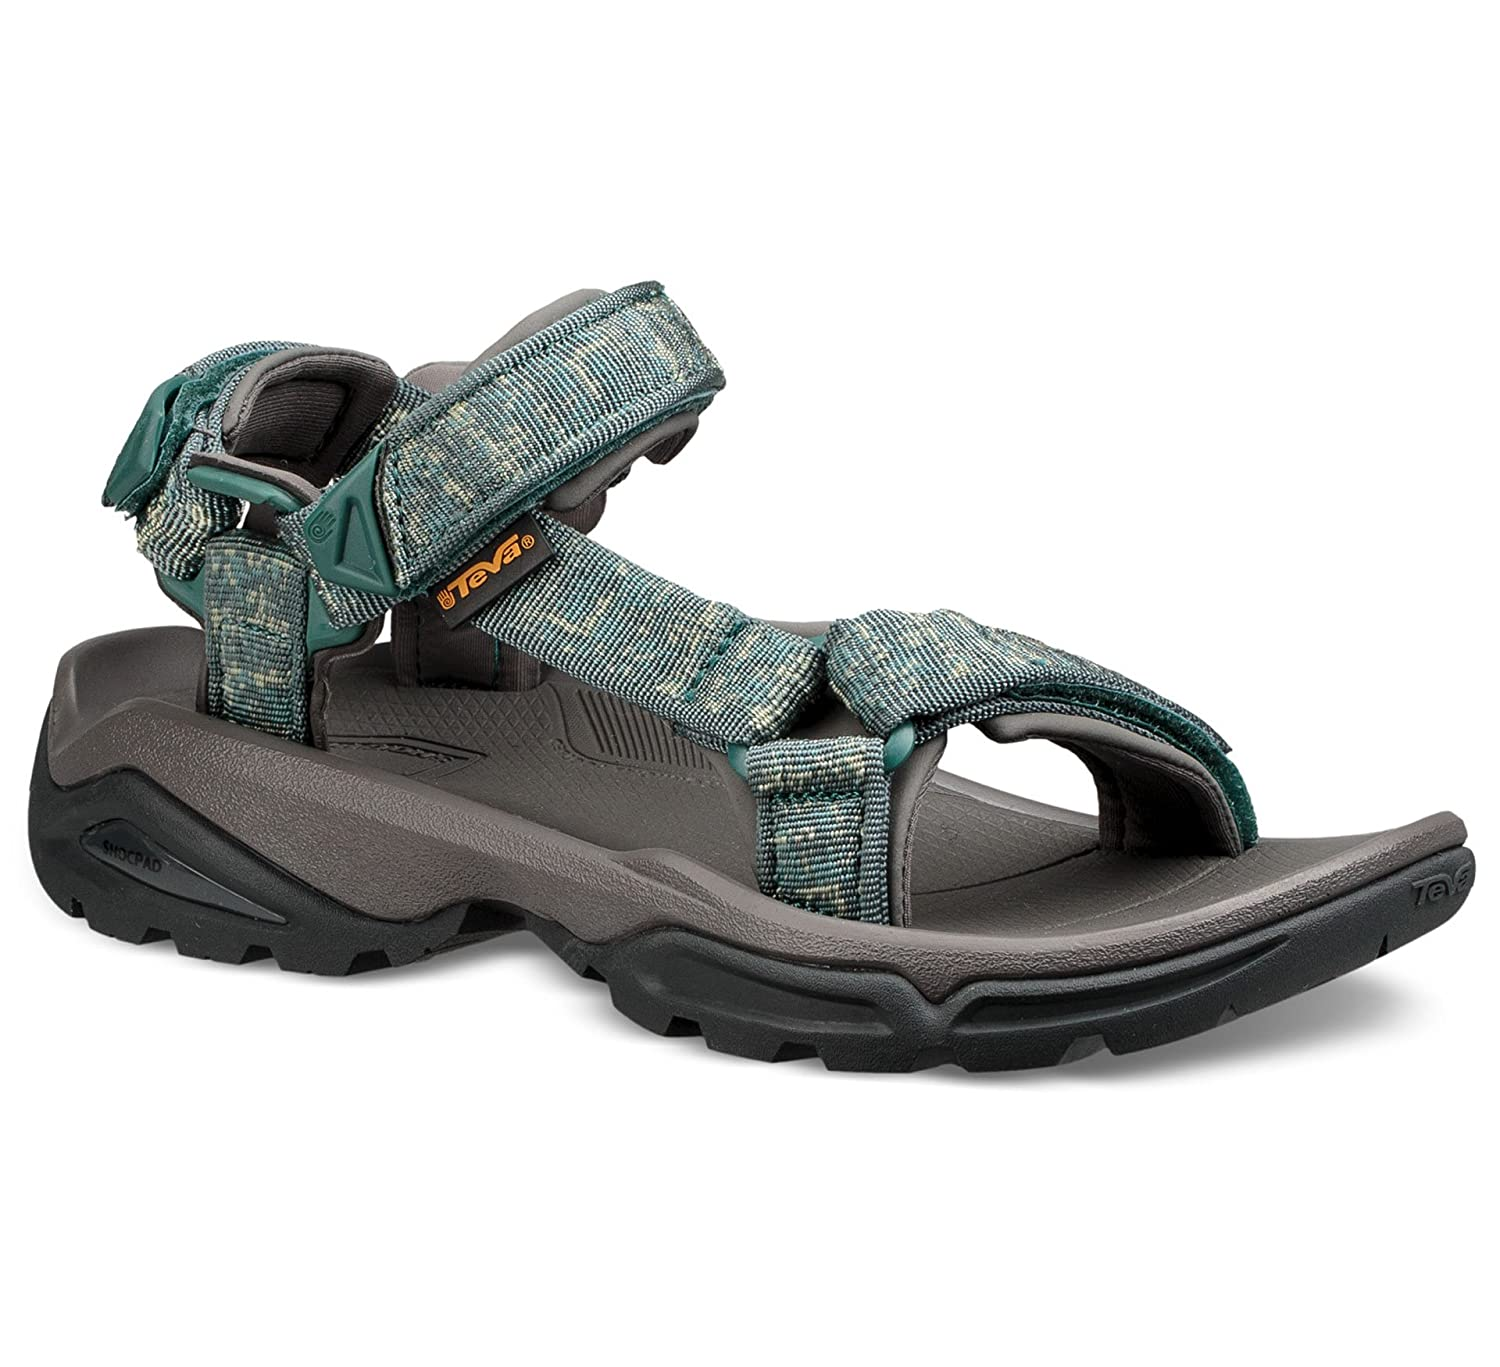 e13ab7068955 Teva Women s W Terra Fi 4 Open Toe Sandals  Amazon.co.uk  Shoes   Bags